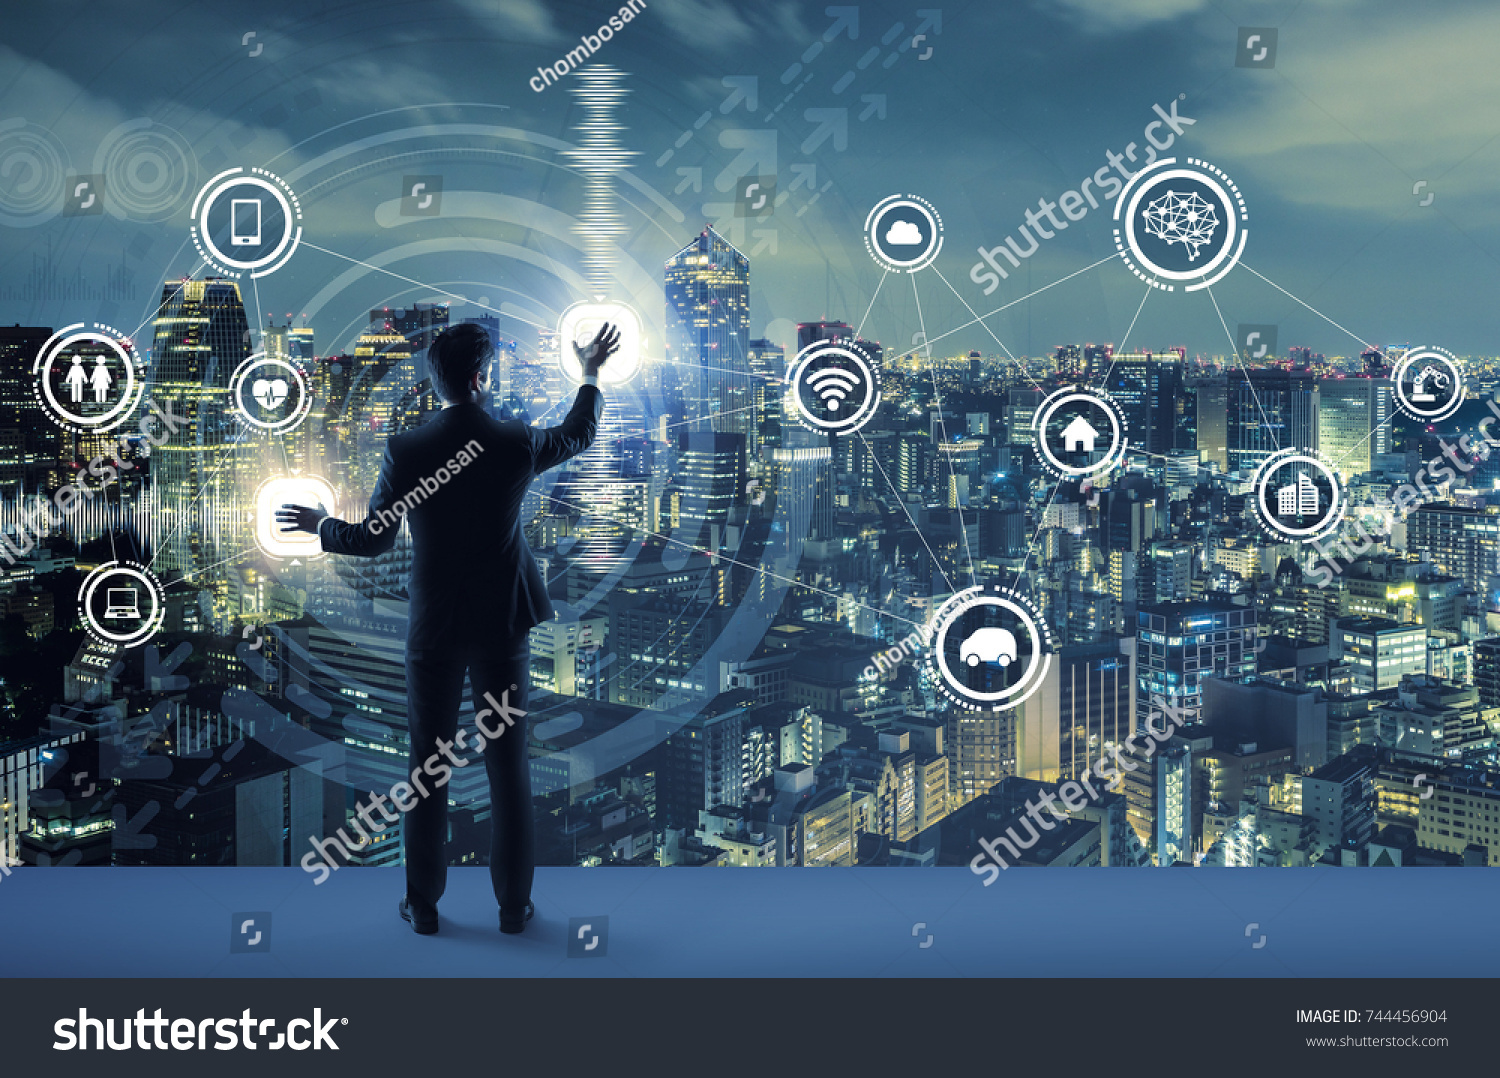 young business person and graphical user interface concept. Artificial Intelligence.  Internet of Things. Information Communication Technology. Smart City. digital transformation. #744456904